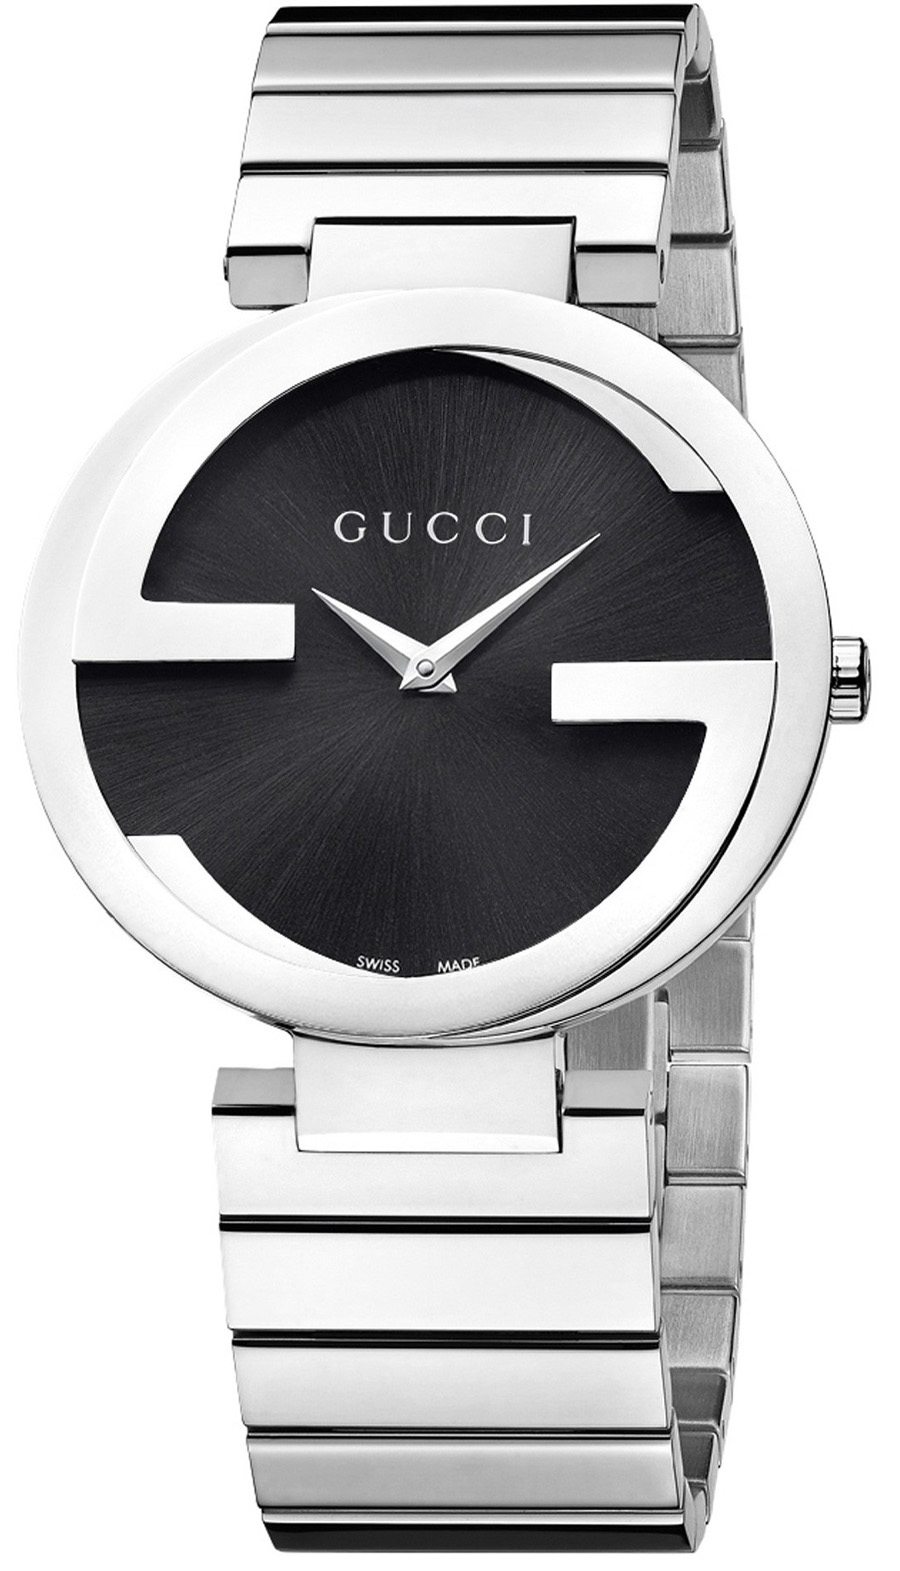 1030d27e390 Gucci YA133206 - In Stock! - This handsome men s Gucci Interlocking G watch  is made from black ion-plated steel and is fitted with a quartz movement.